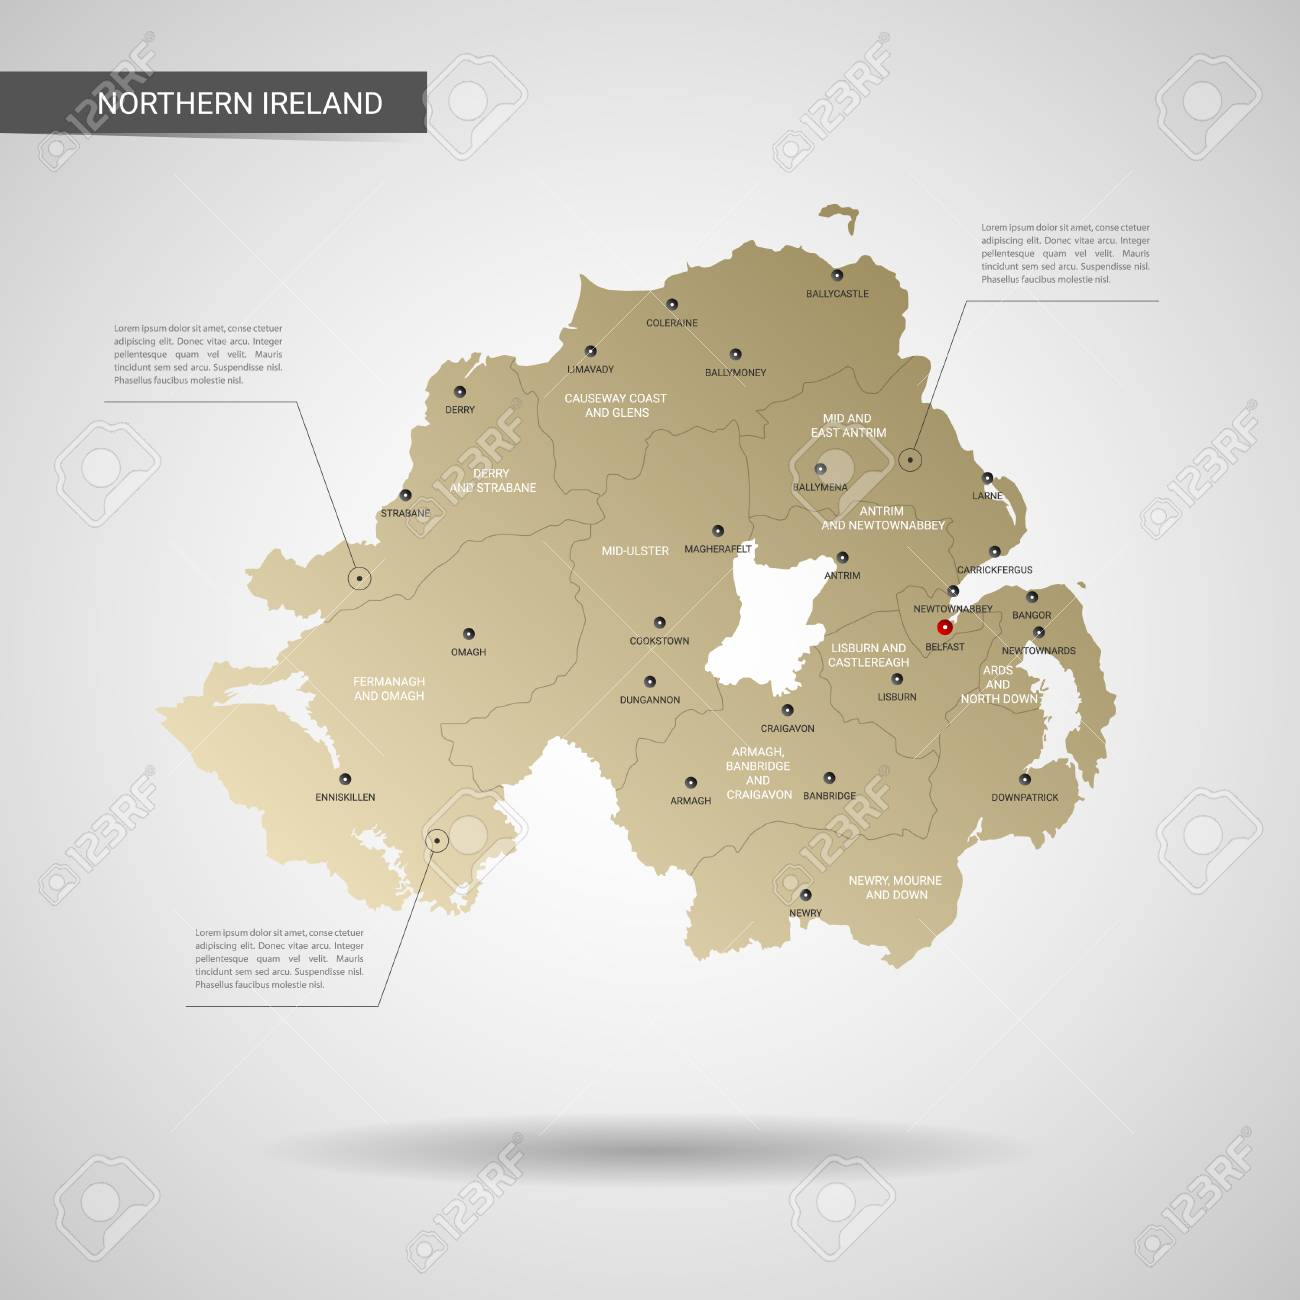 Map Of Ireland 3d.Stylized Vector Northern Ireland Map Infographic 3d Gold Map